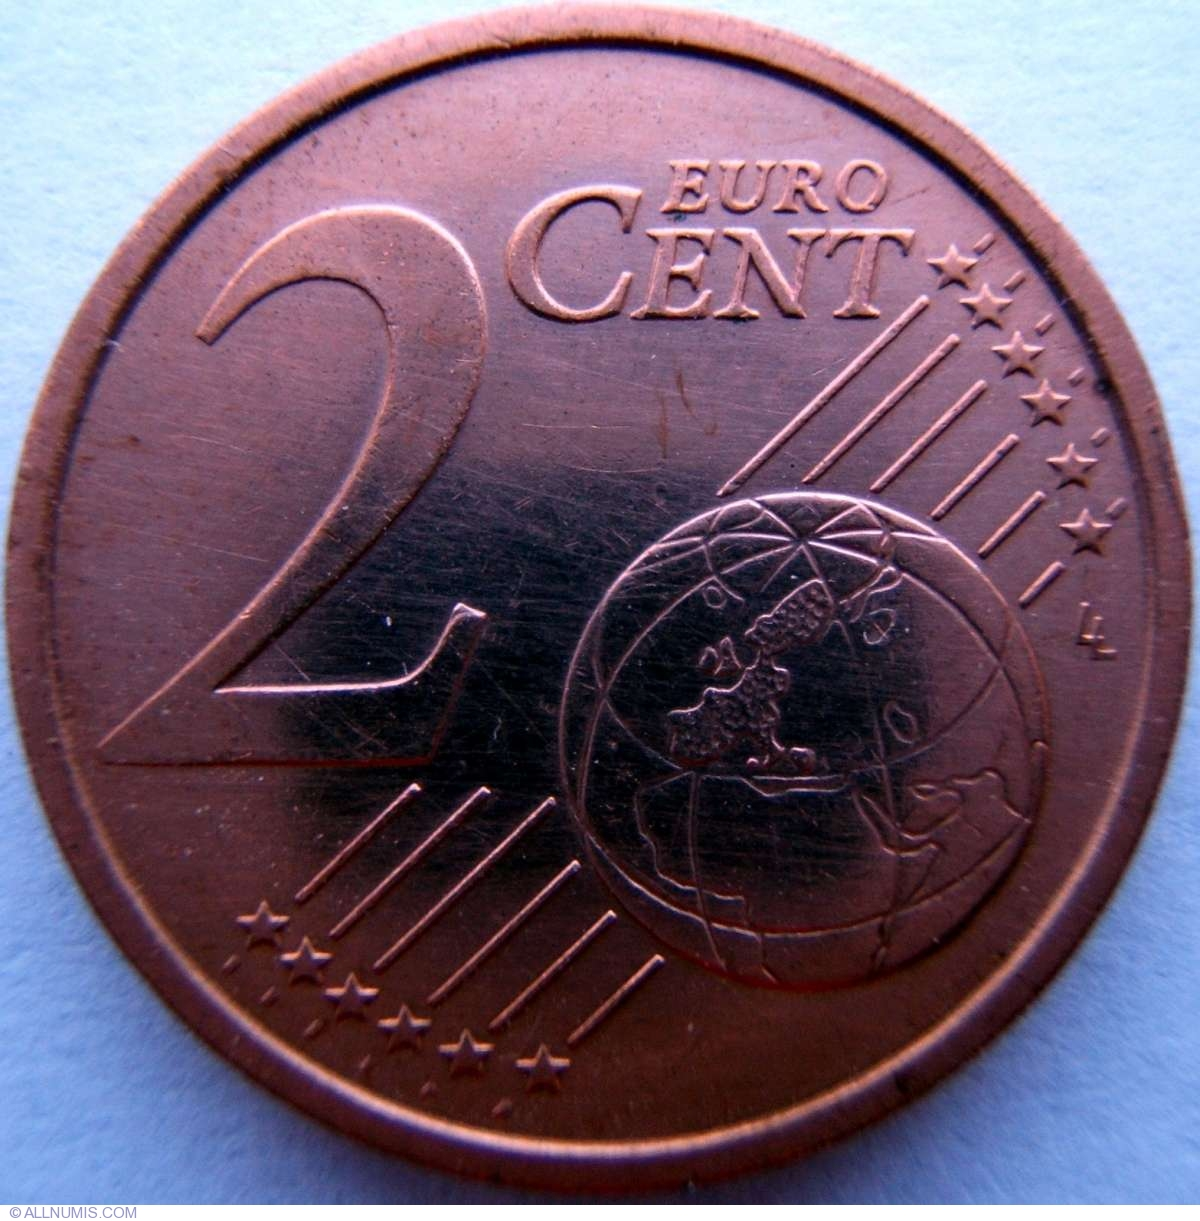 2 euro cen i 2002 euro 2002 2 euro cent italia. Black Bedroom Furniture Sets. Home Design Ideas